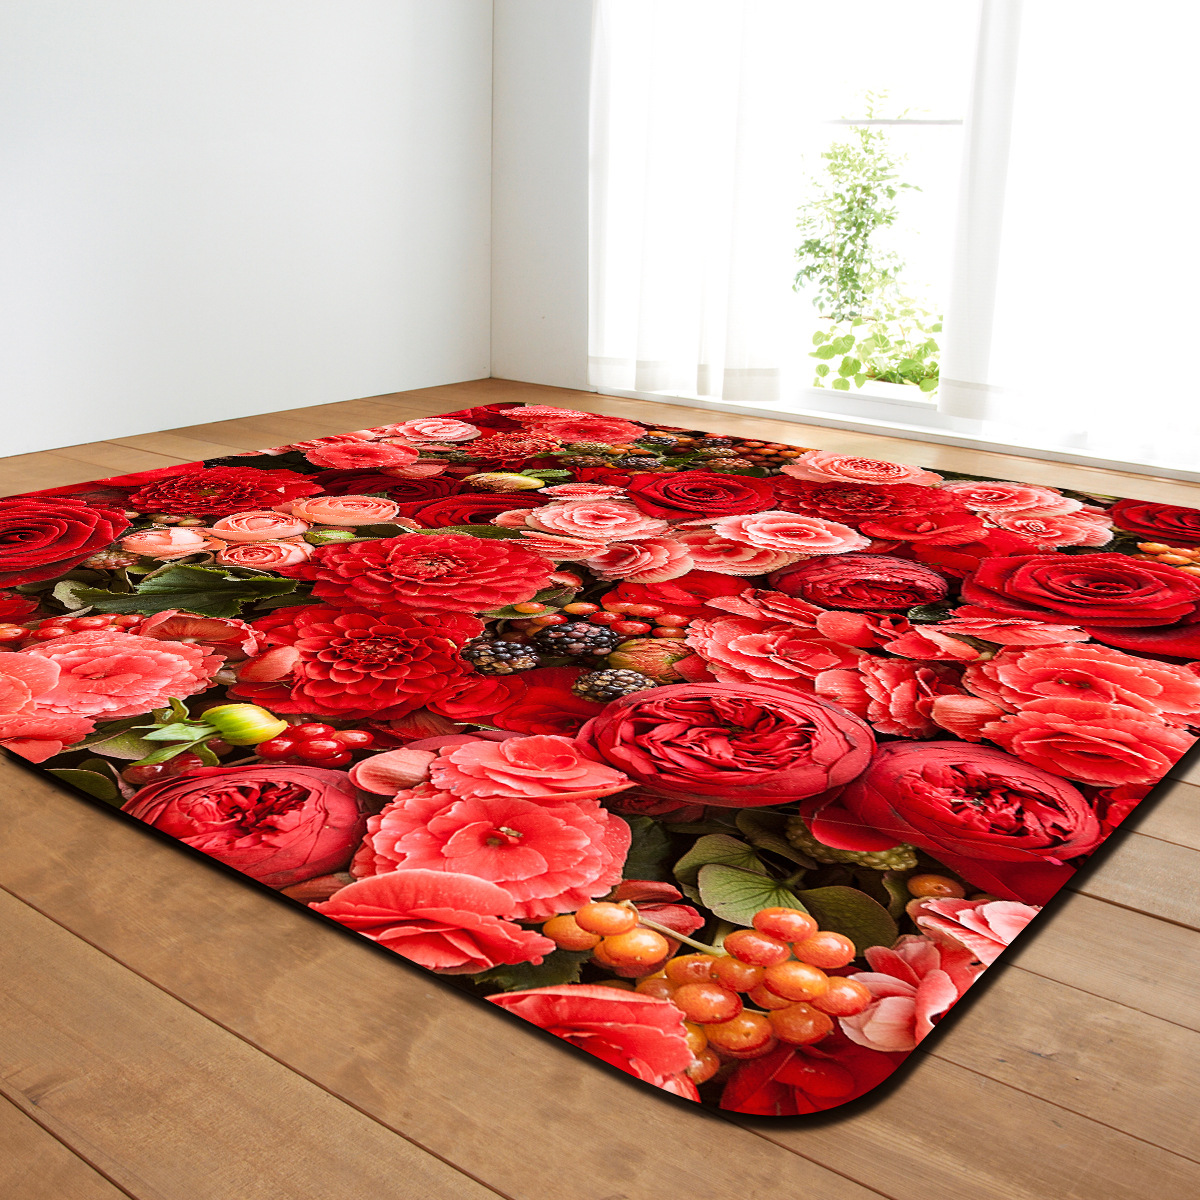 Us 26 95 30 Off Flowers Large Rugs Rose Carpets Parlor Mat Soft Flannel Home Decor Children S Room Play Mats Foam Larger Carpet In